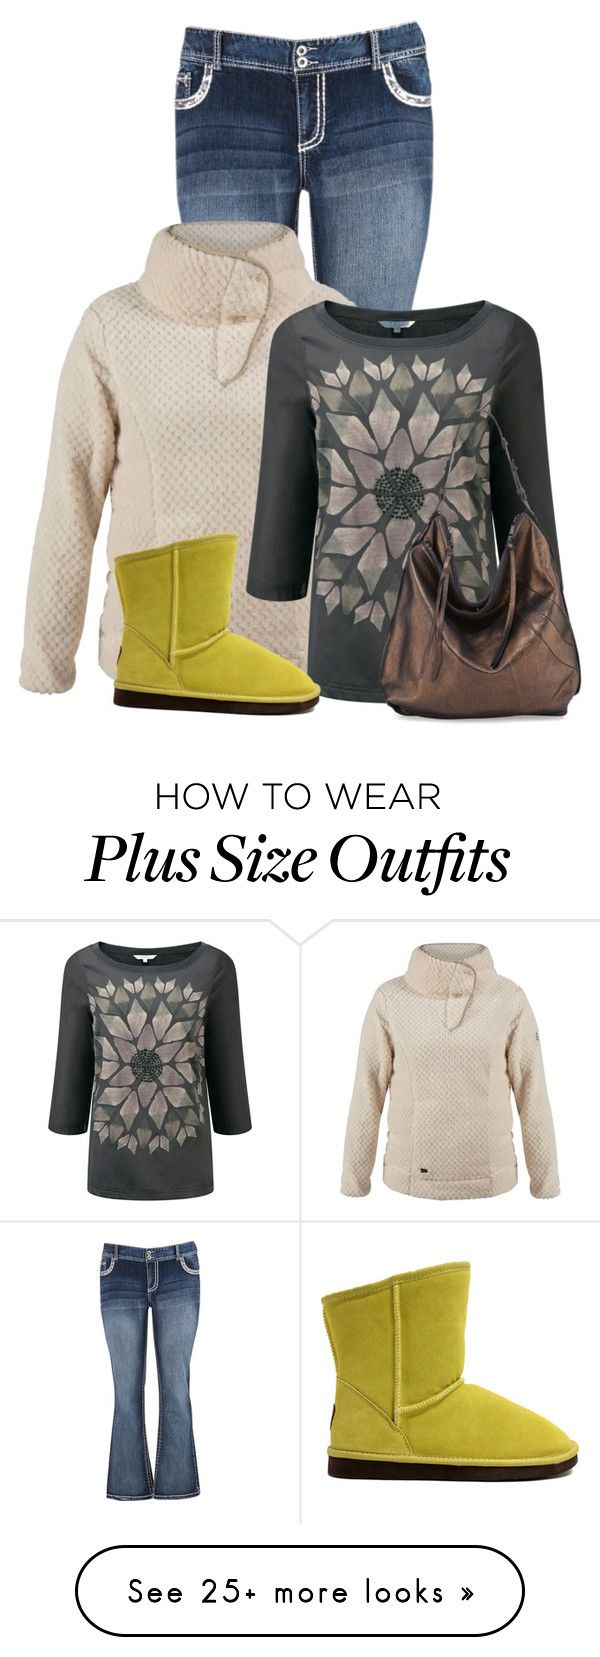 """""""Untitled #11344"""" by nanette-253 on Polyvore featuring maurices, Regatta, Sandwich, Dije California and Kooba"""